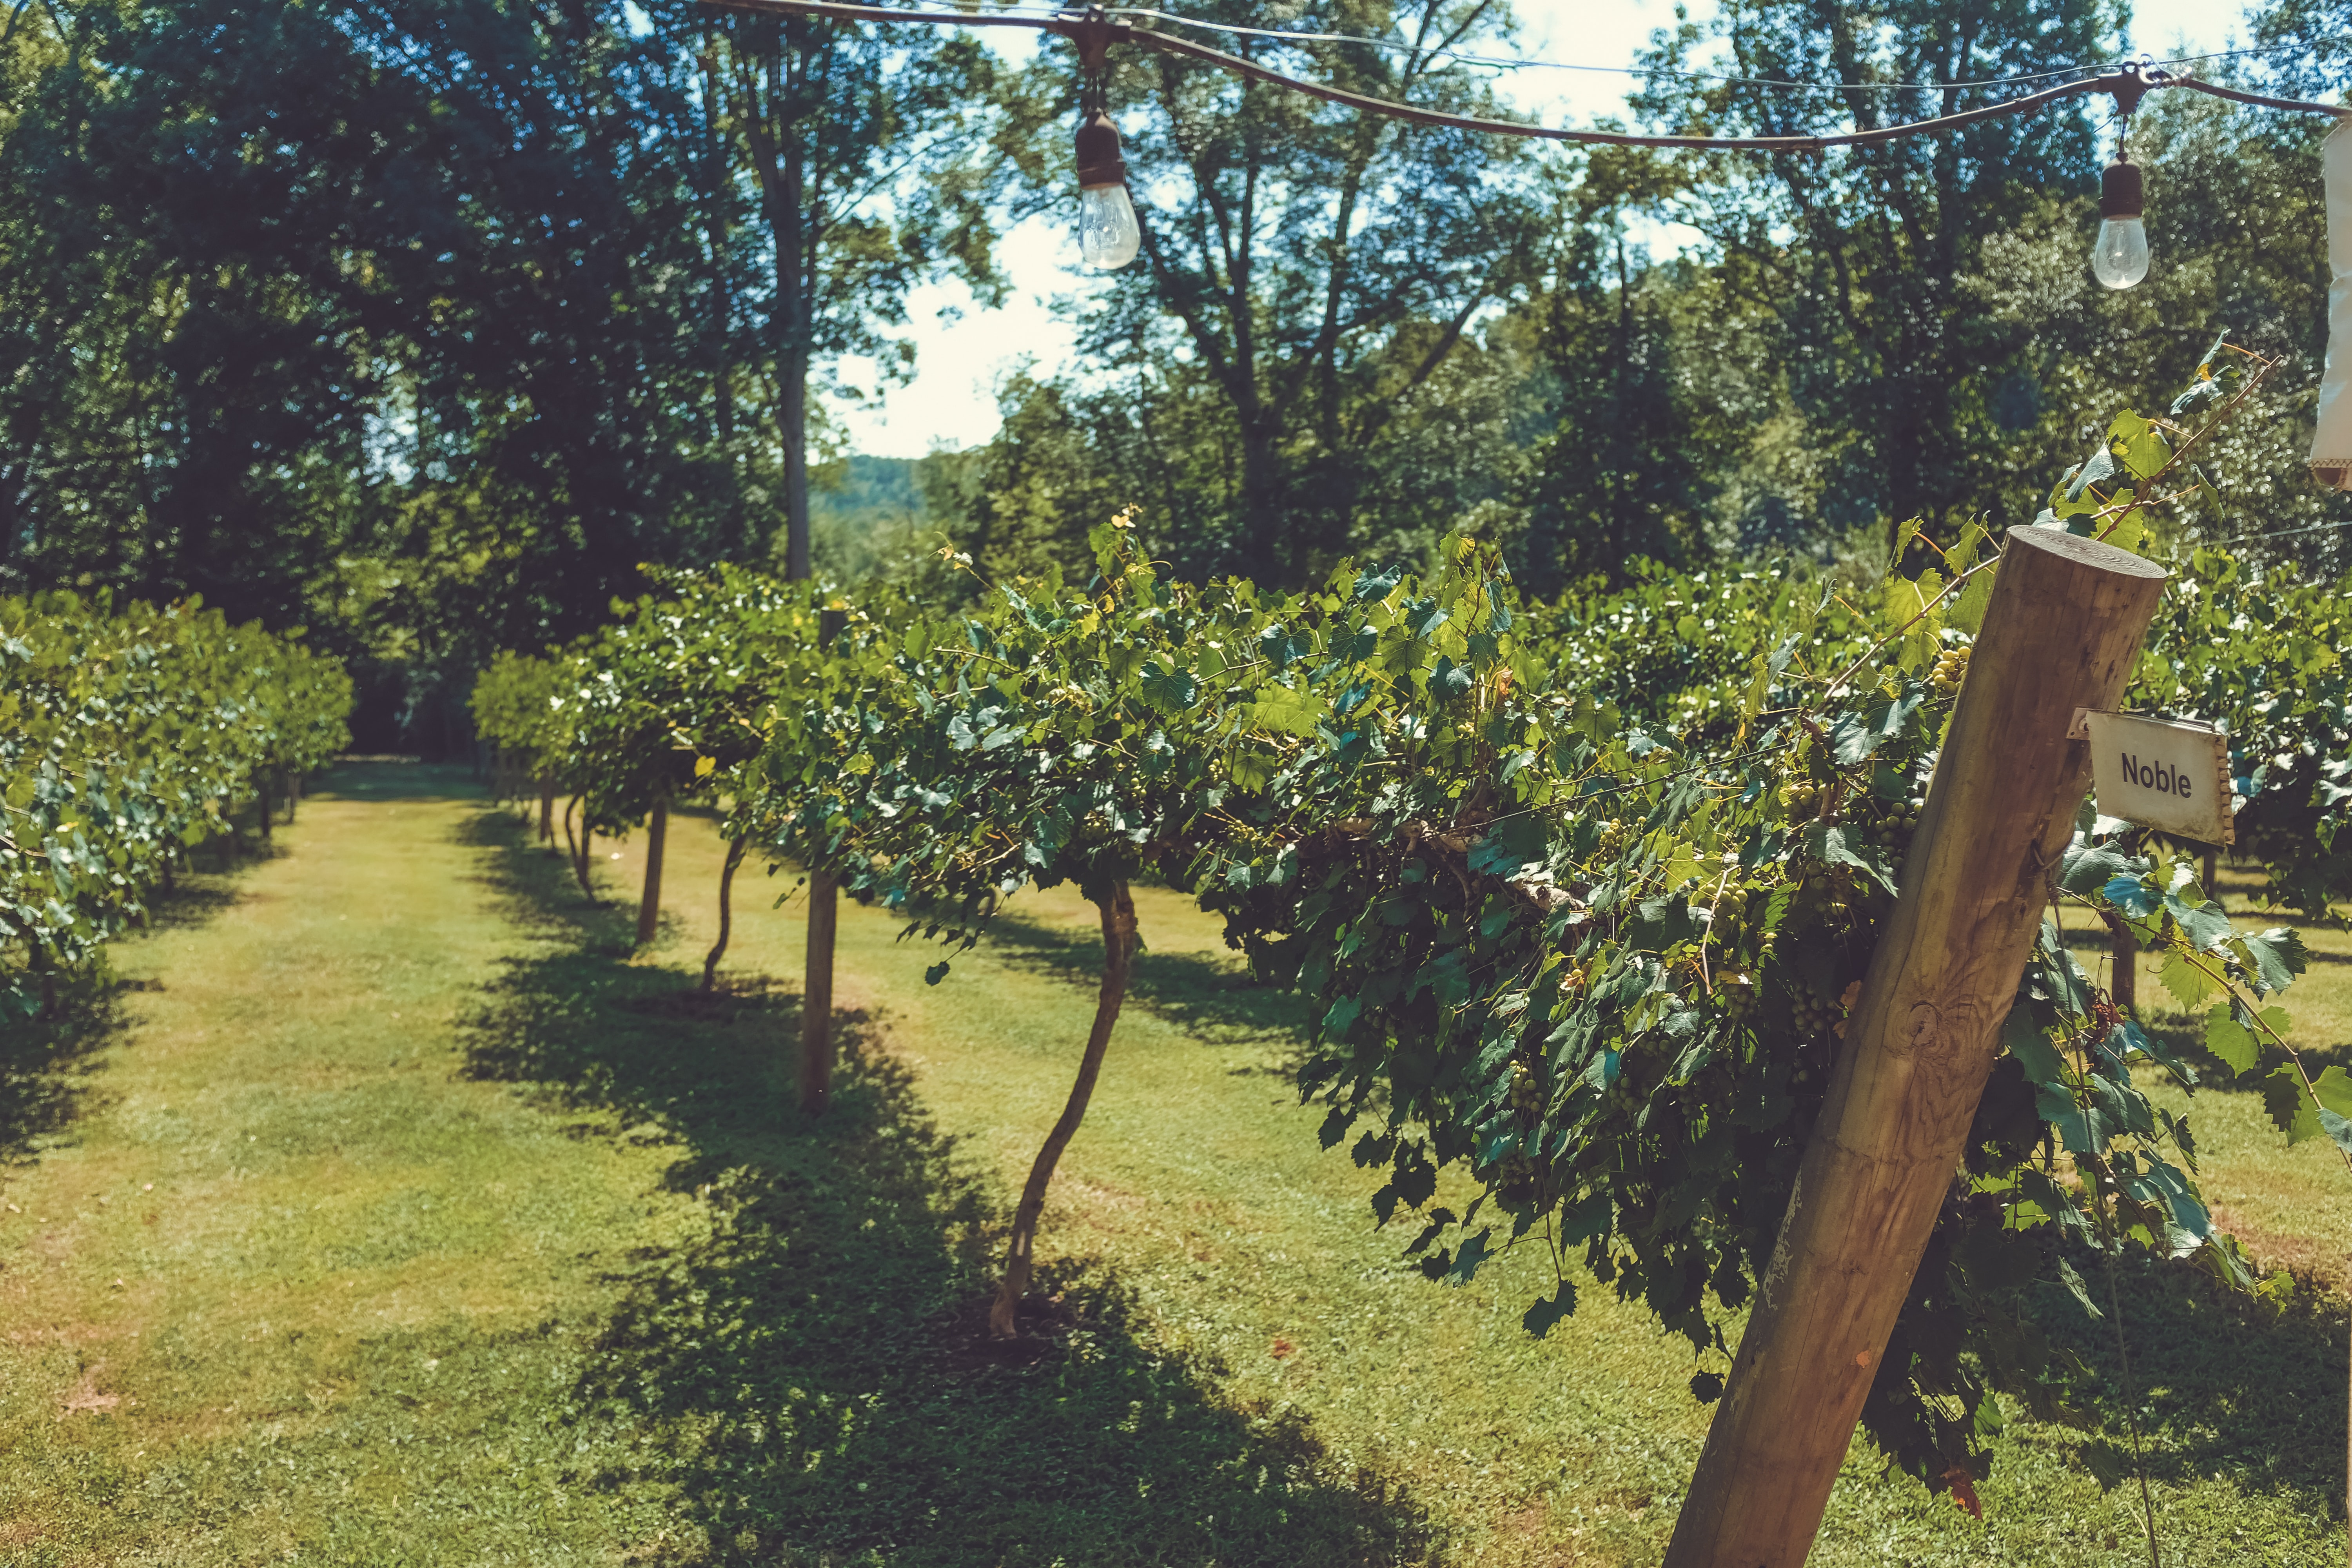 Agritourism Helps Small Farmers and Businesses